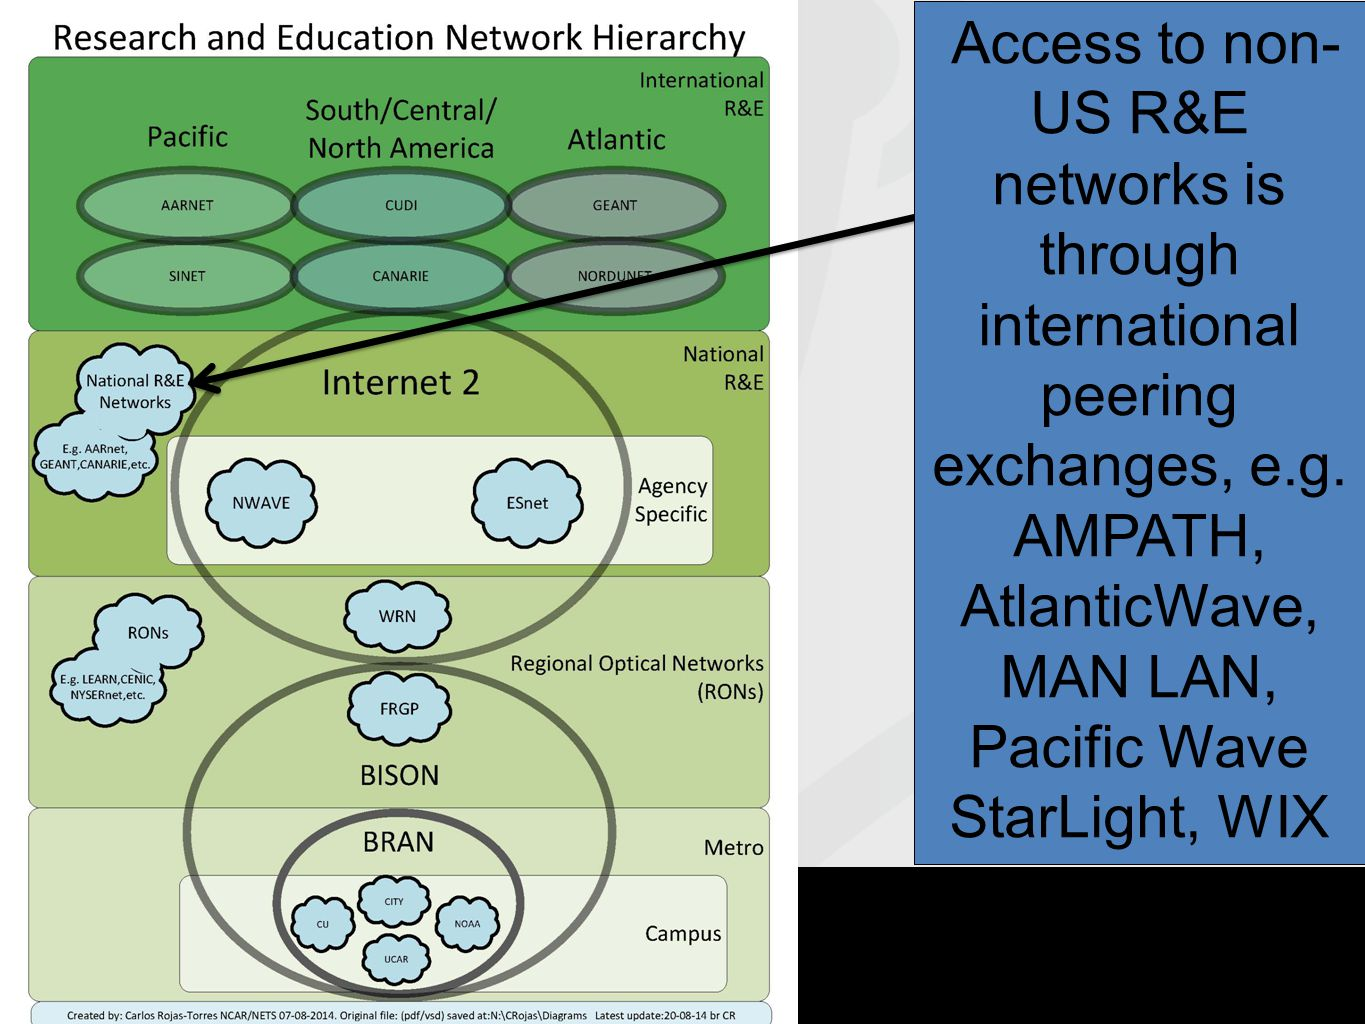 Access to non- US R&E networks is through international peering exchanges, e.g.